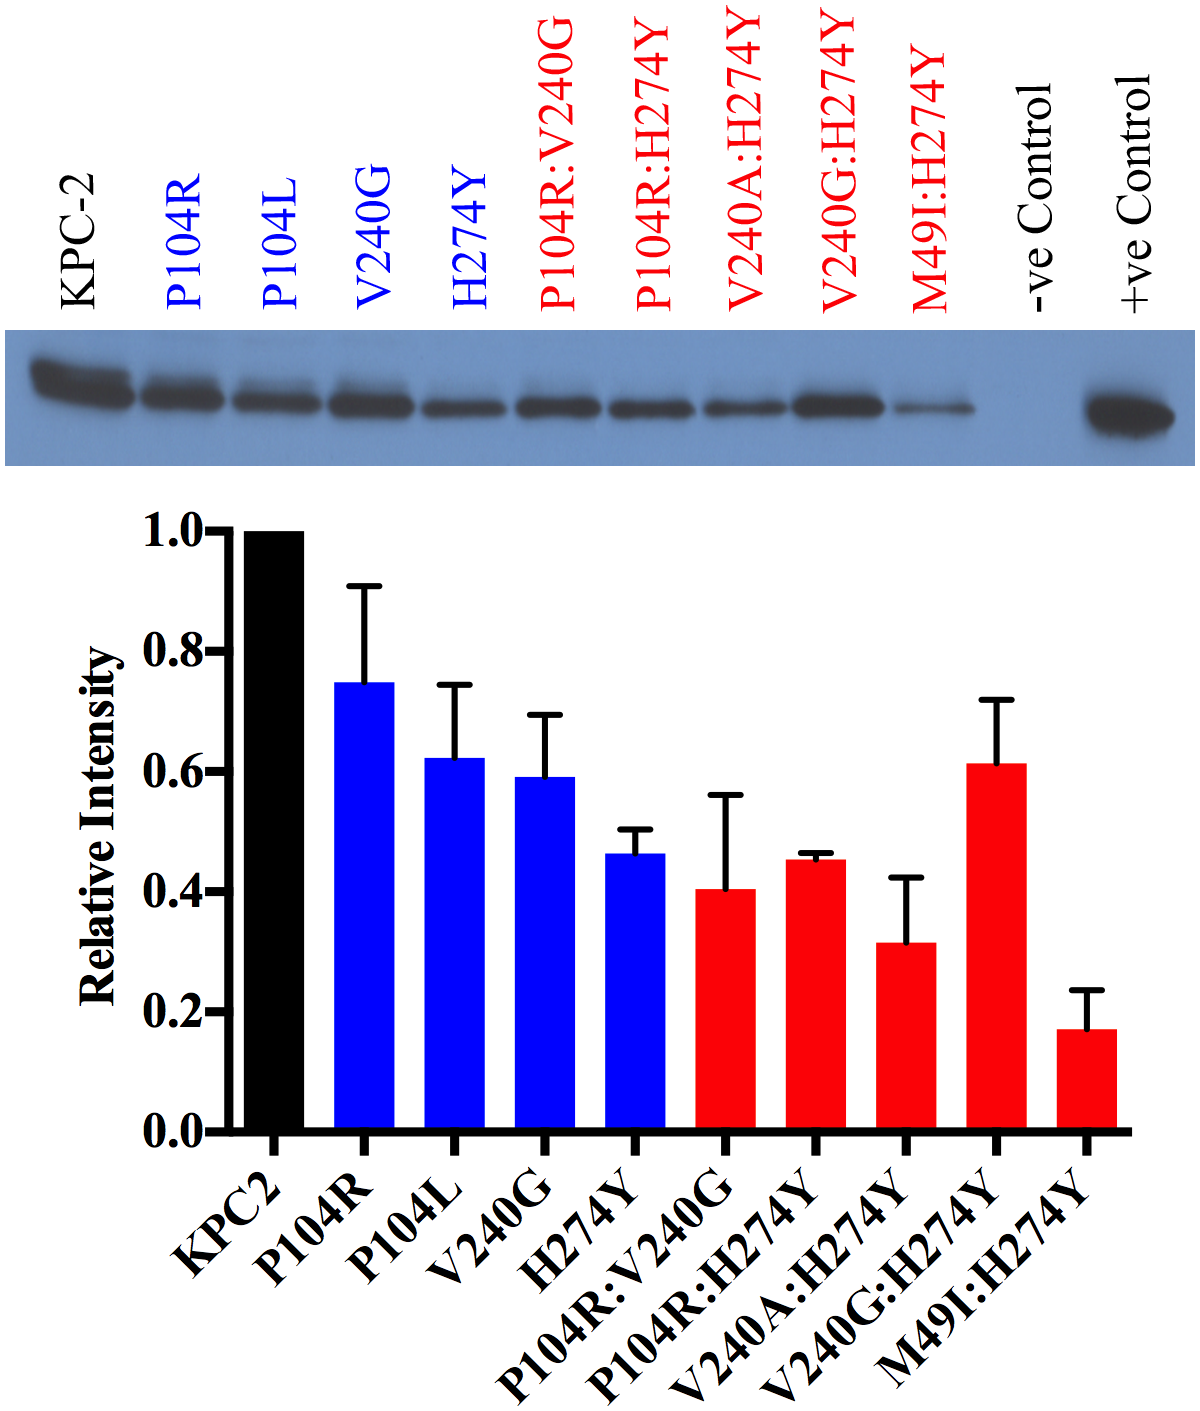 Protein expression levels of KPC-2 β-lactamase and variant enzymes.